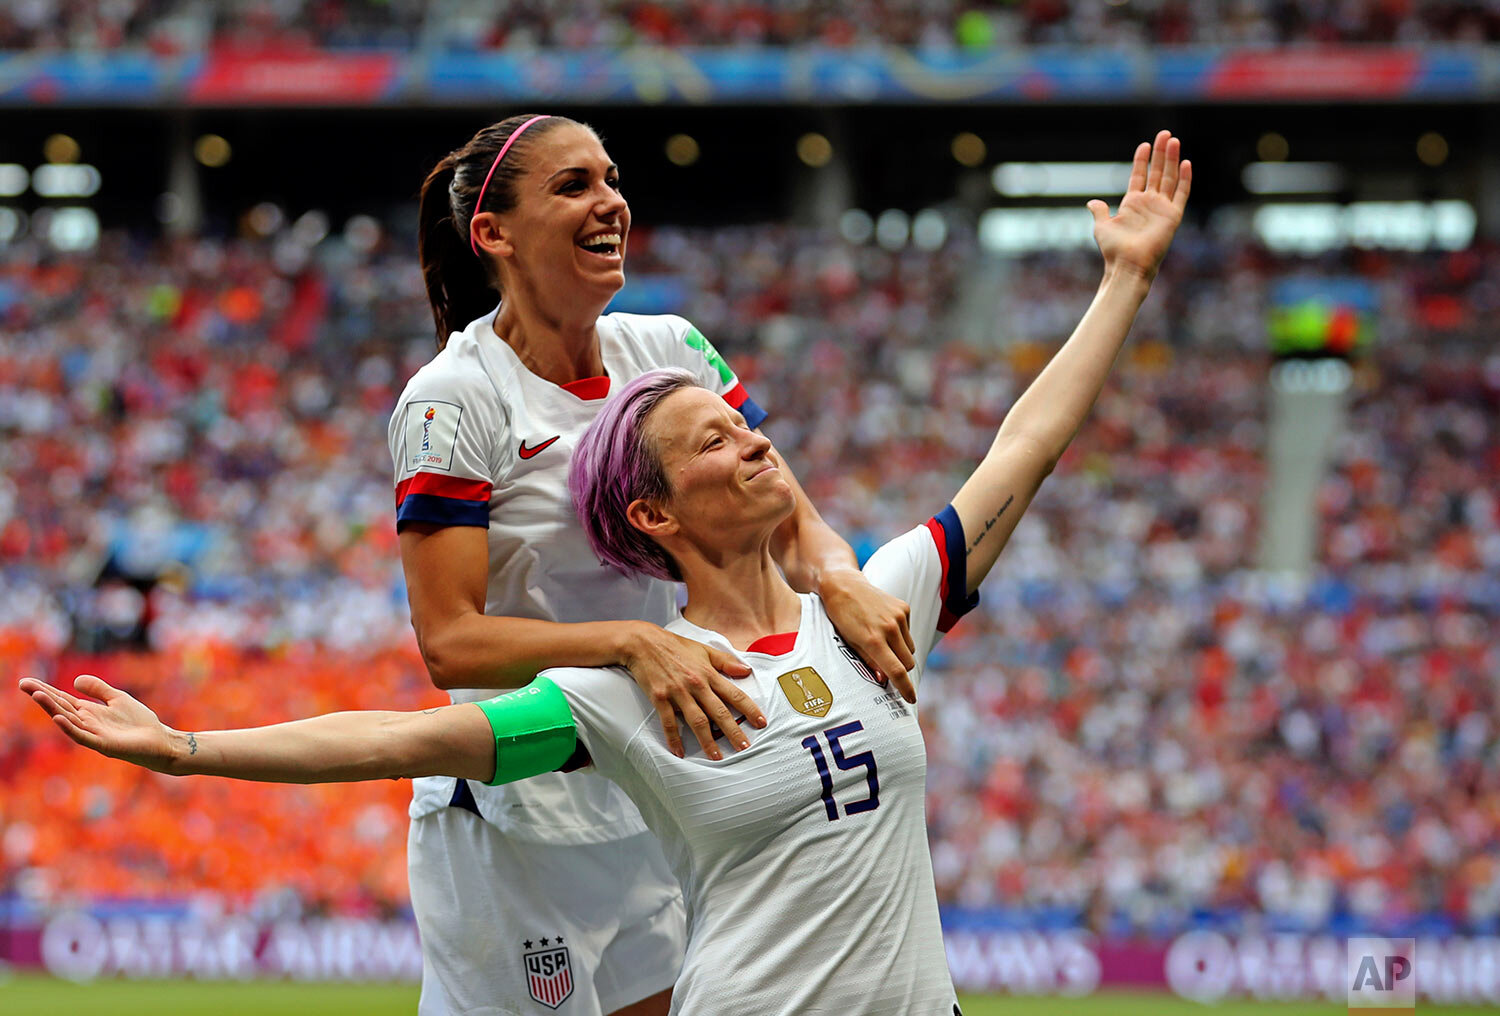 United States' Megan Rapinoe, right, celebrates with Alex Morgan after Rapinoe scored the opening goal from the penalty spot during the Women's World Cup final soccer match between the U.S. and The Netherlands at the Stade de Lyon in Decines, outside Lyon, France, on July 7, 2019. (AP Photo/Francisco Seco)